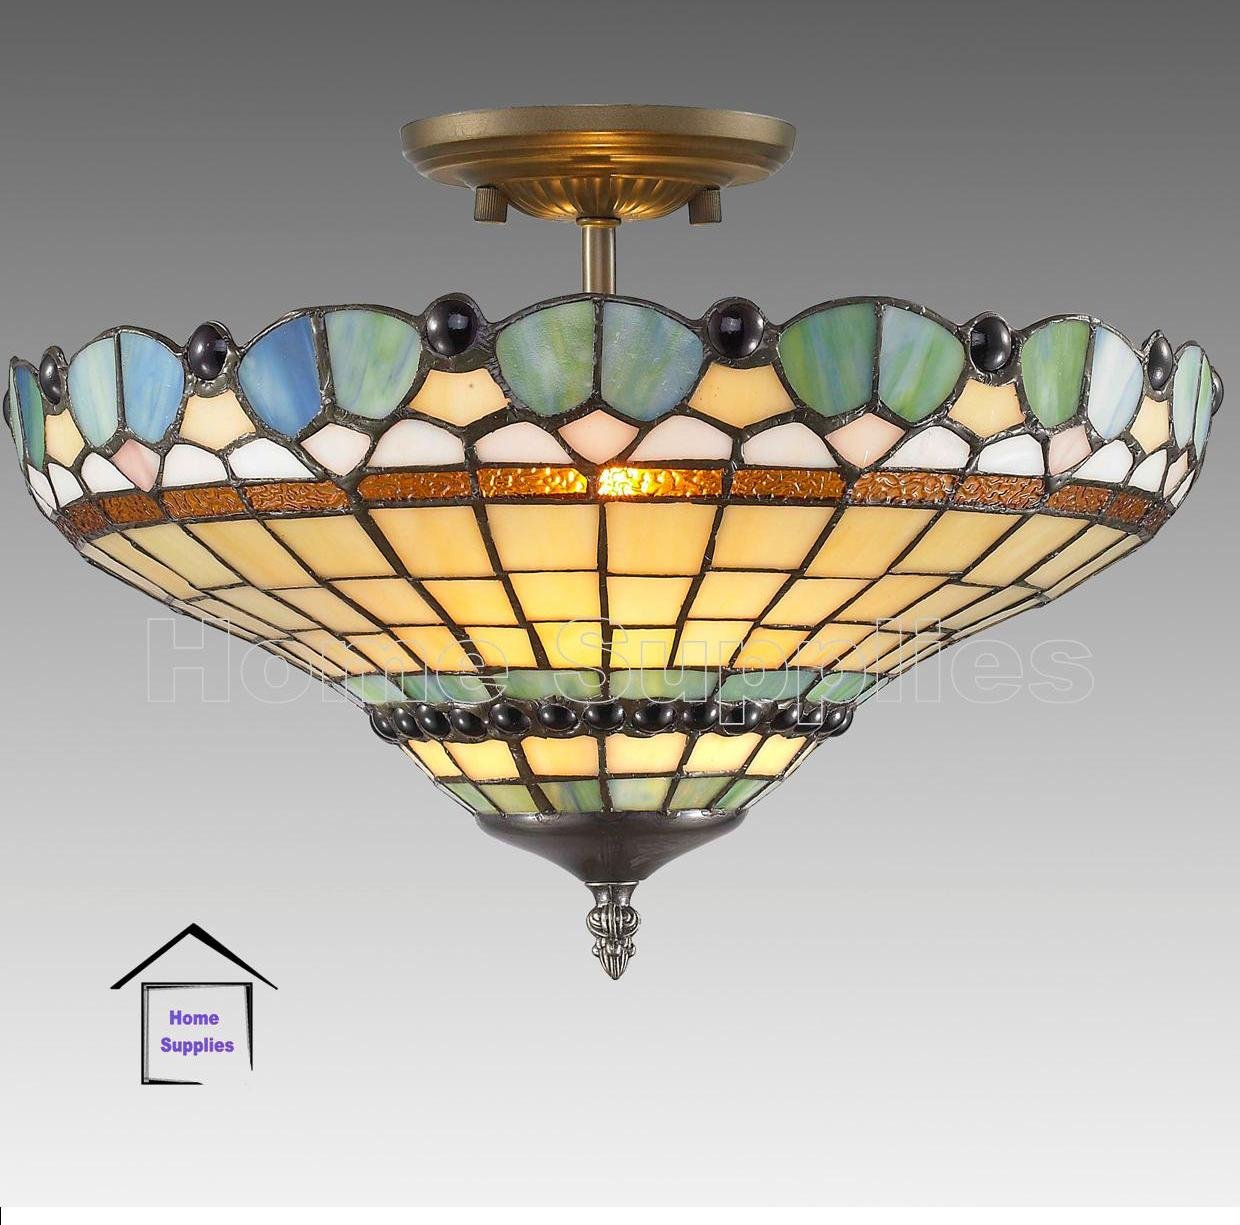 design lights ceiling tiffany dlrn lamps with theme ceilings wonderful grape